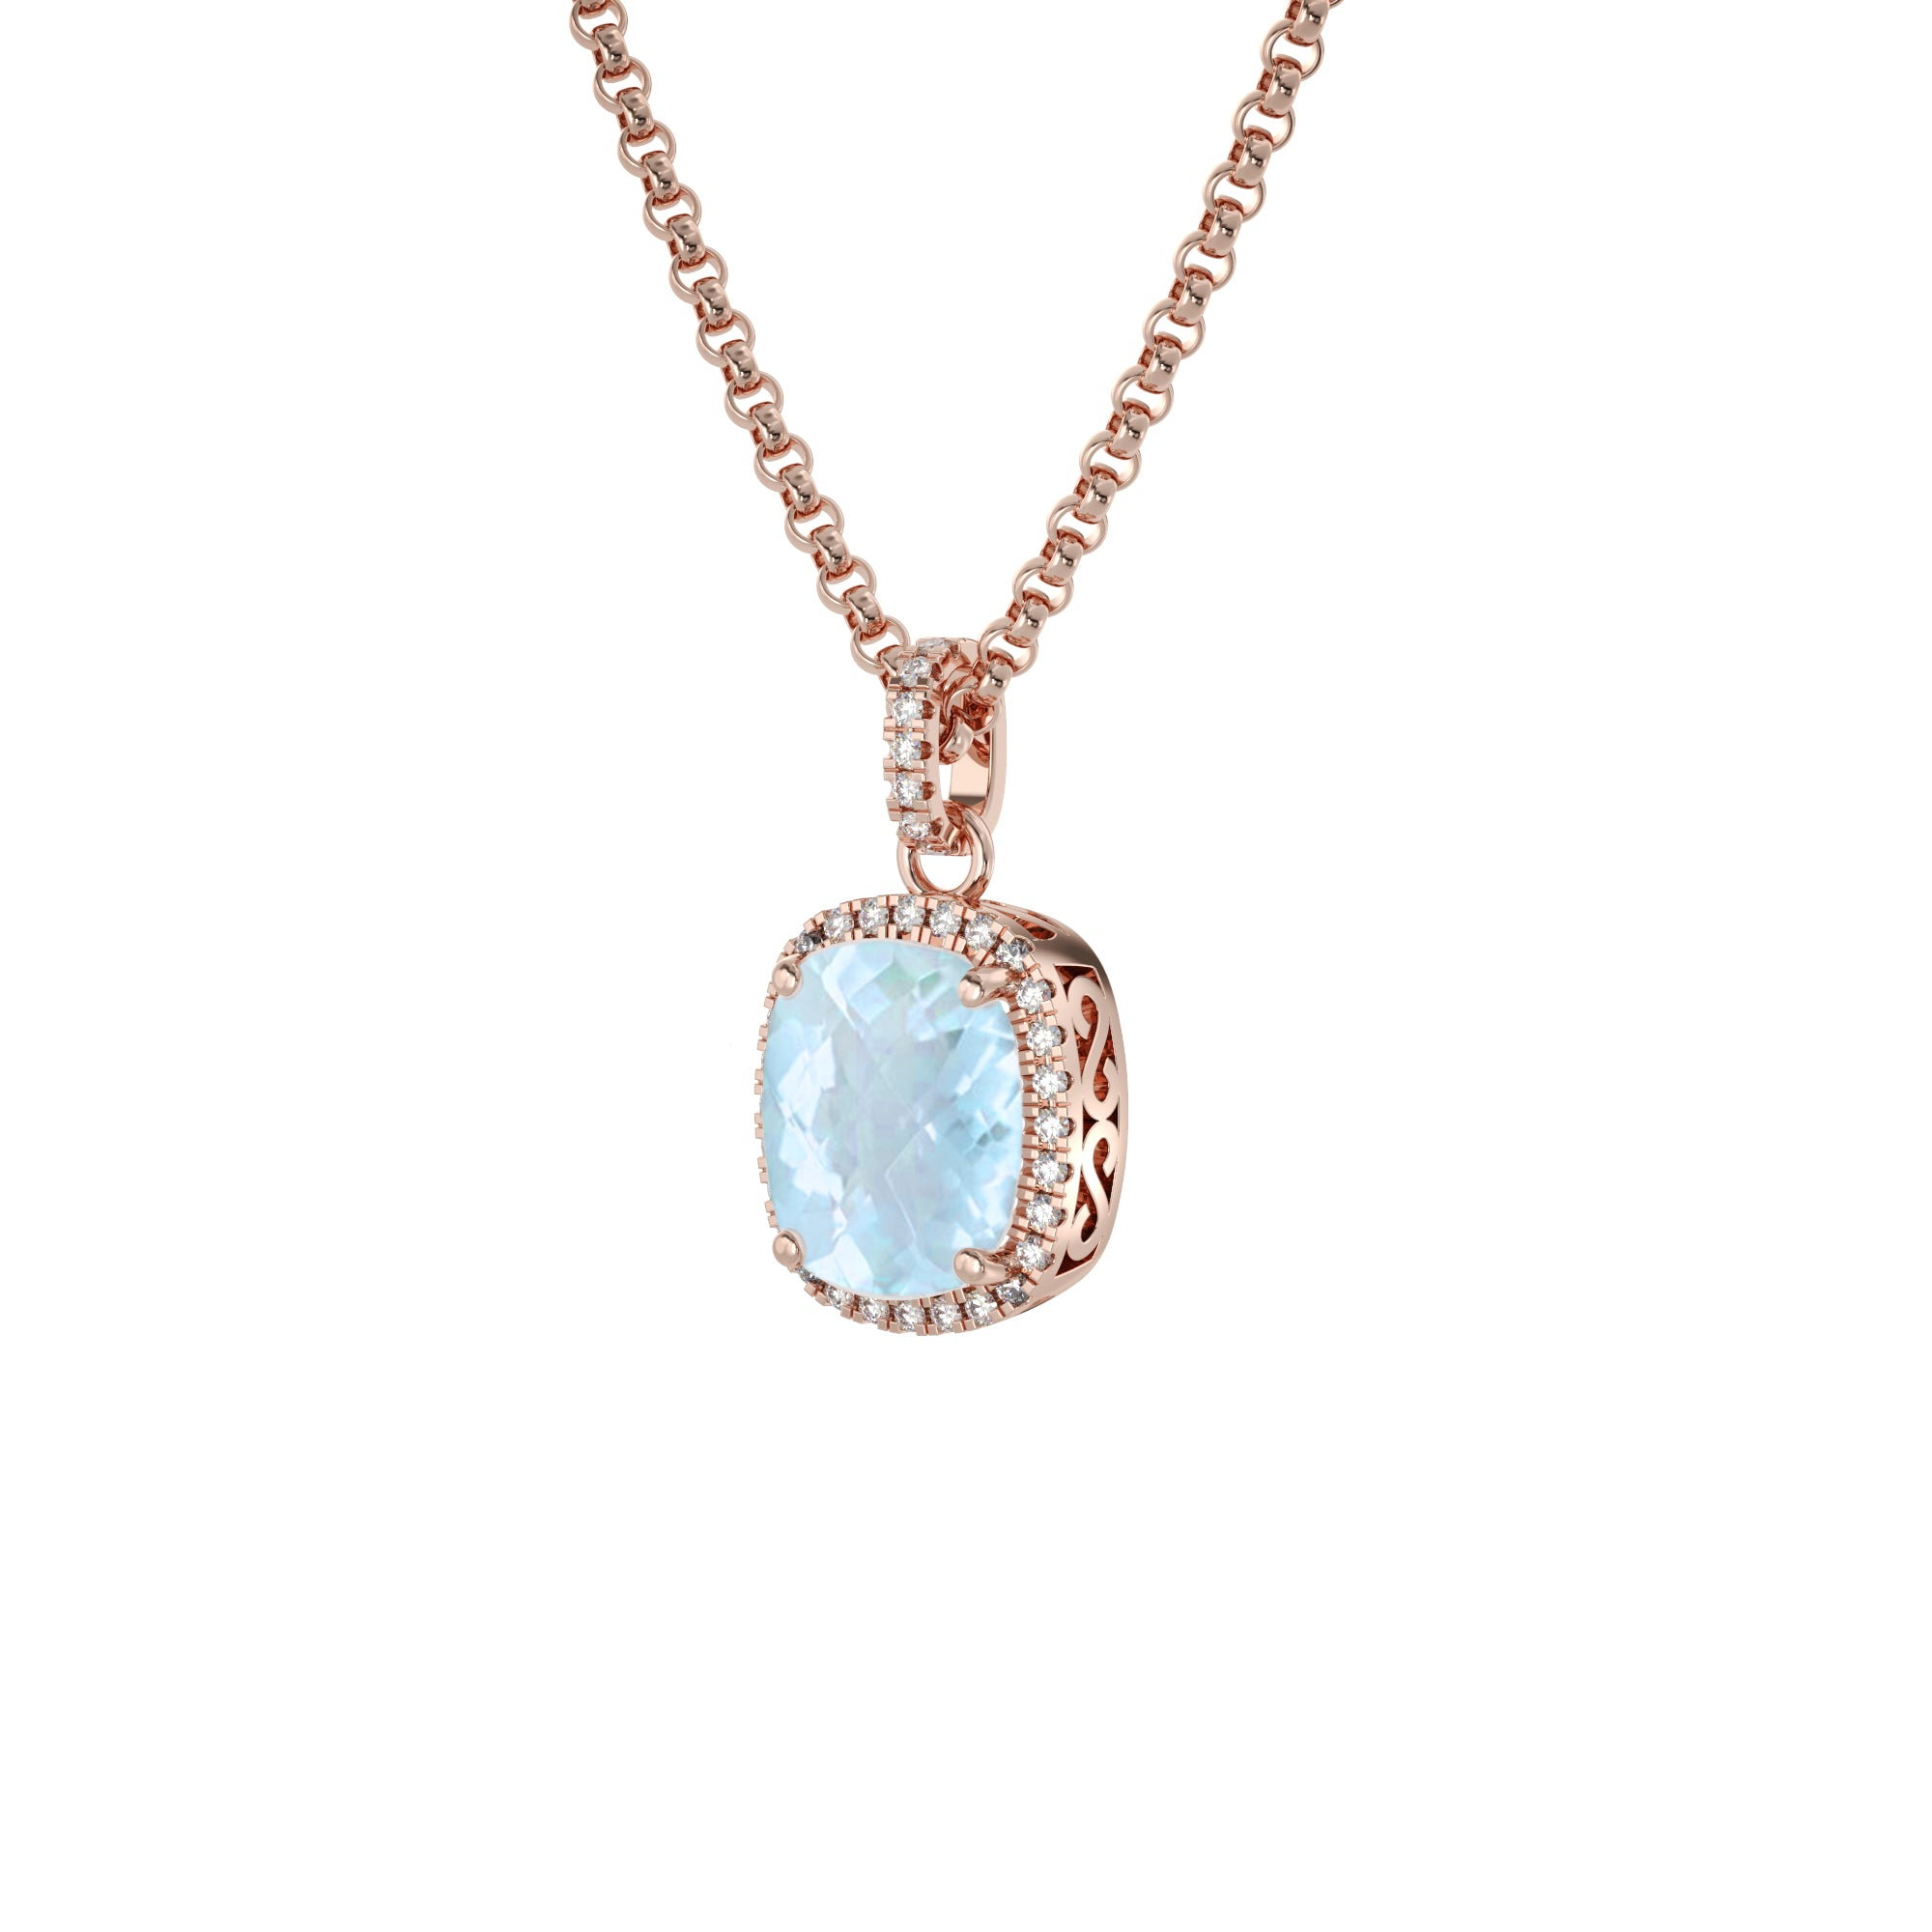 925 Silver Luxe Series Necklace - Laria (Topaz) - Rose Gold Plated